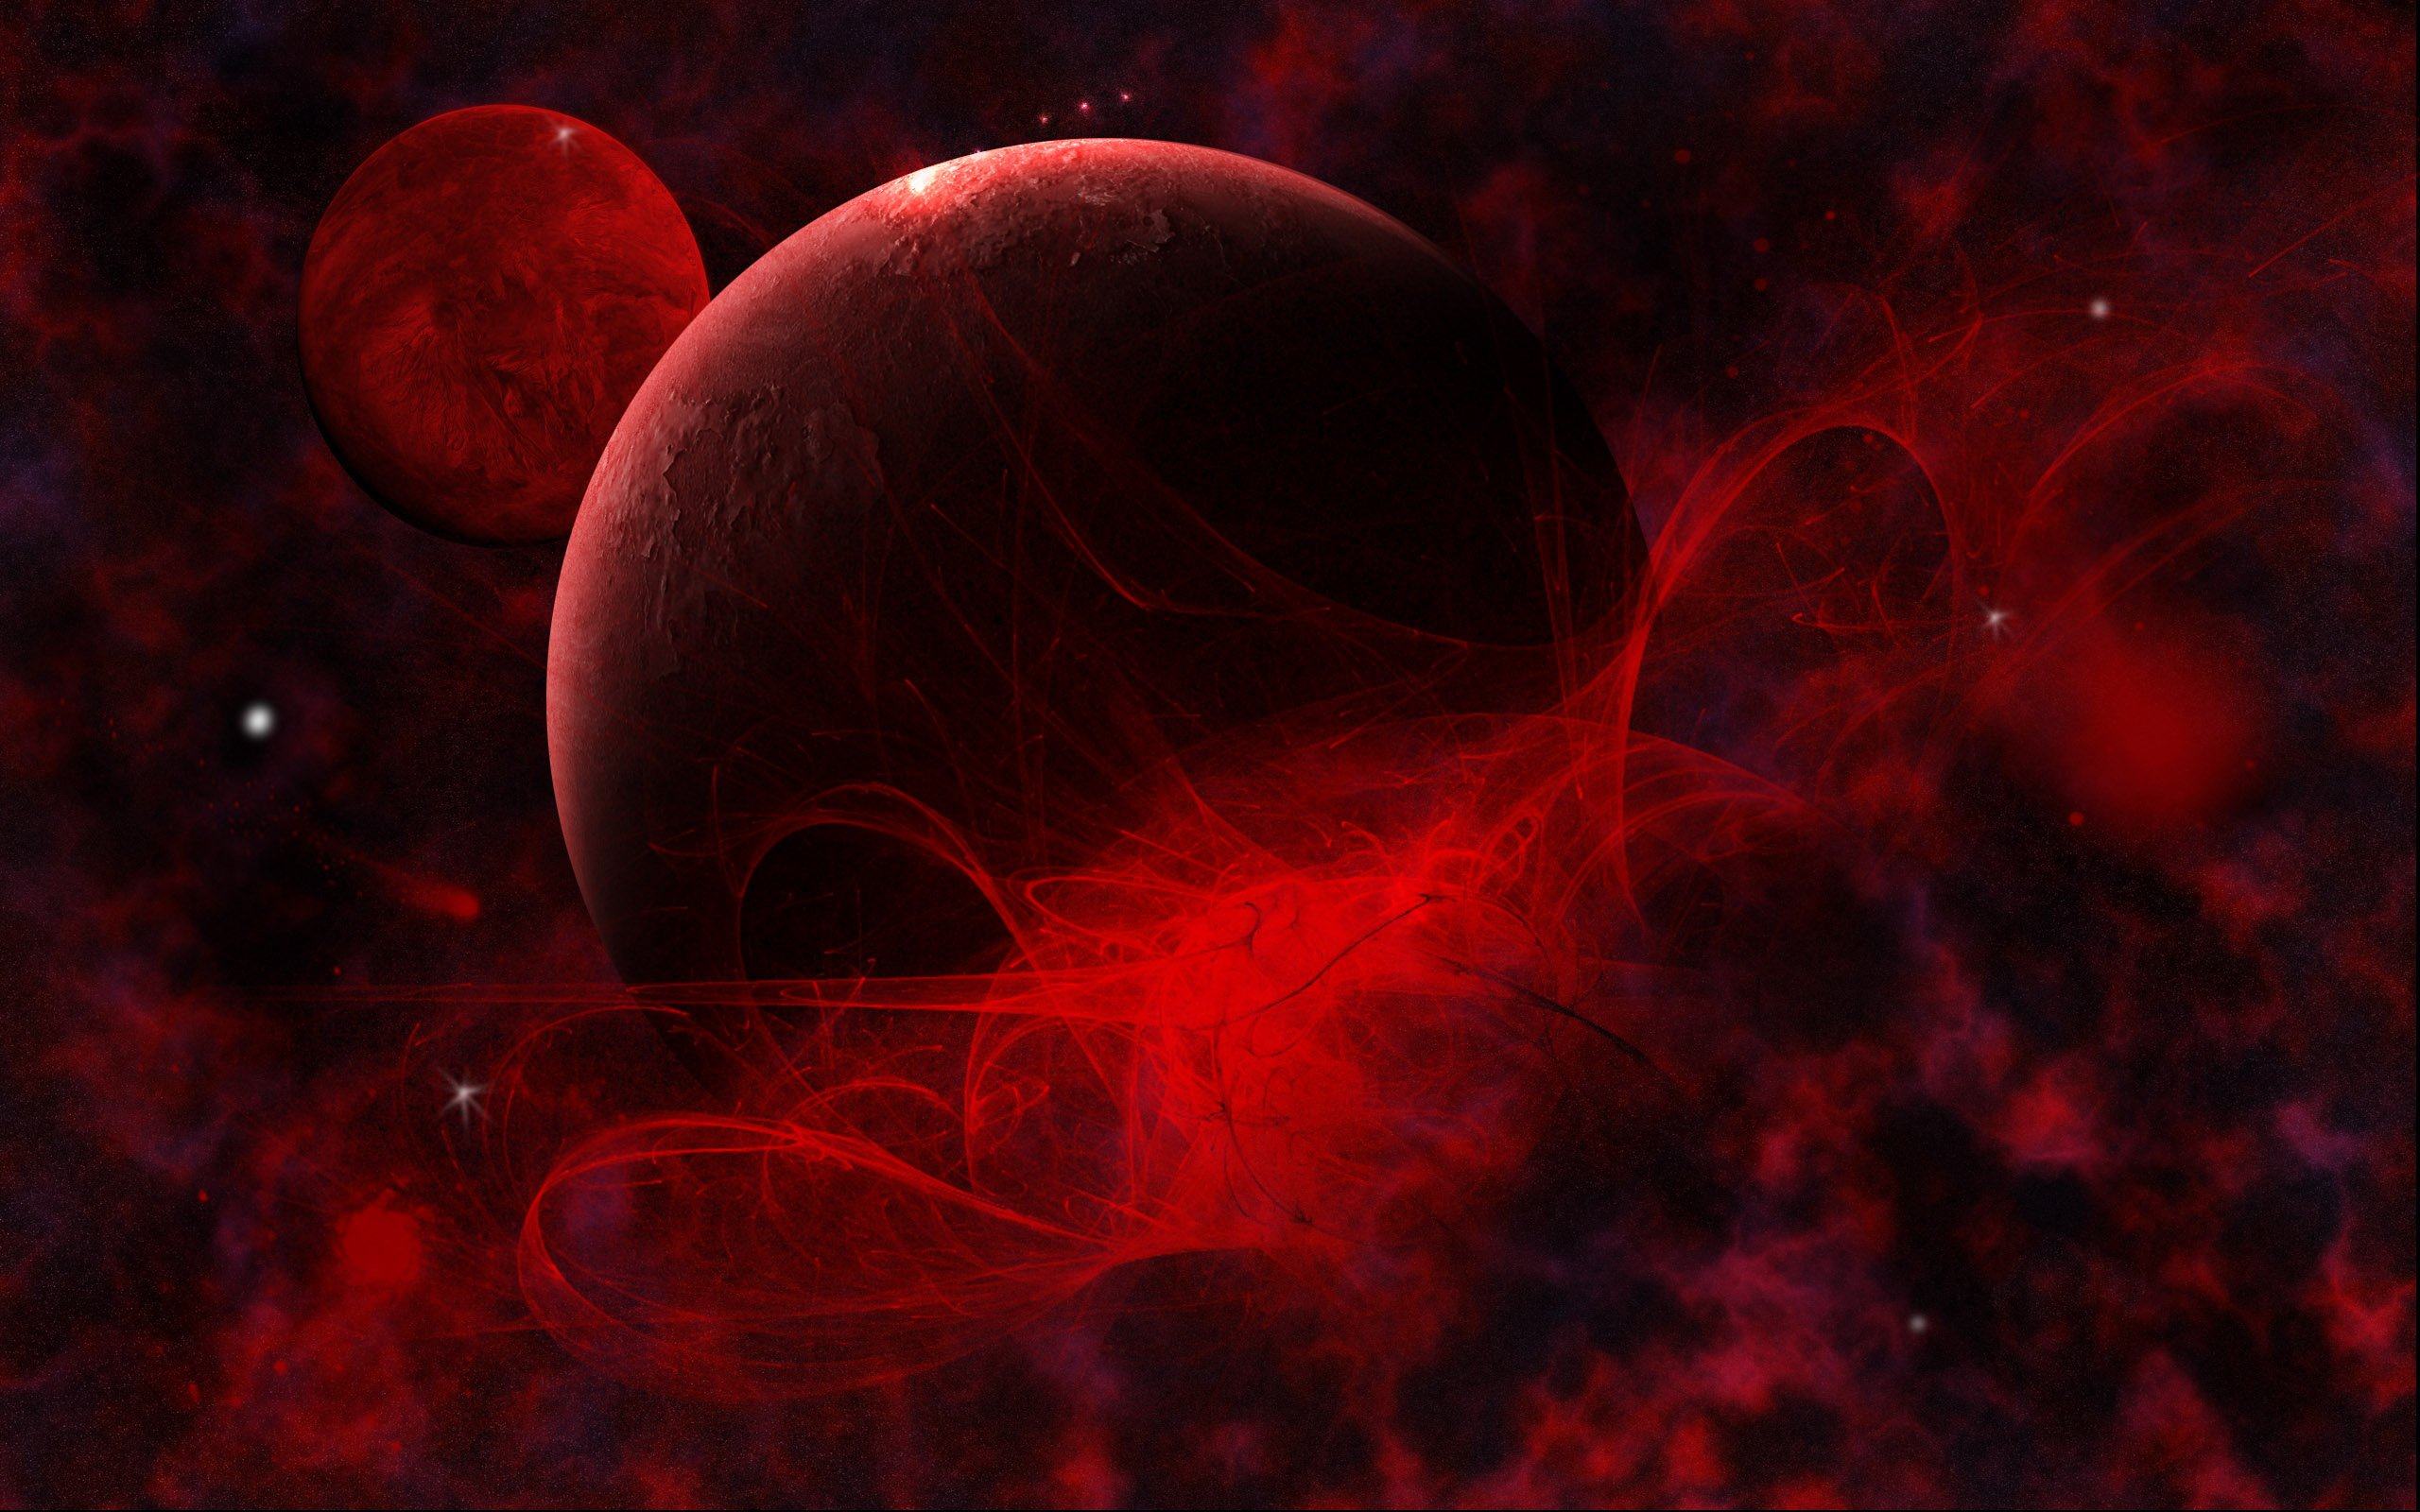 Red space wallpaper wallpapersafari - Black space wallpaper ...